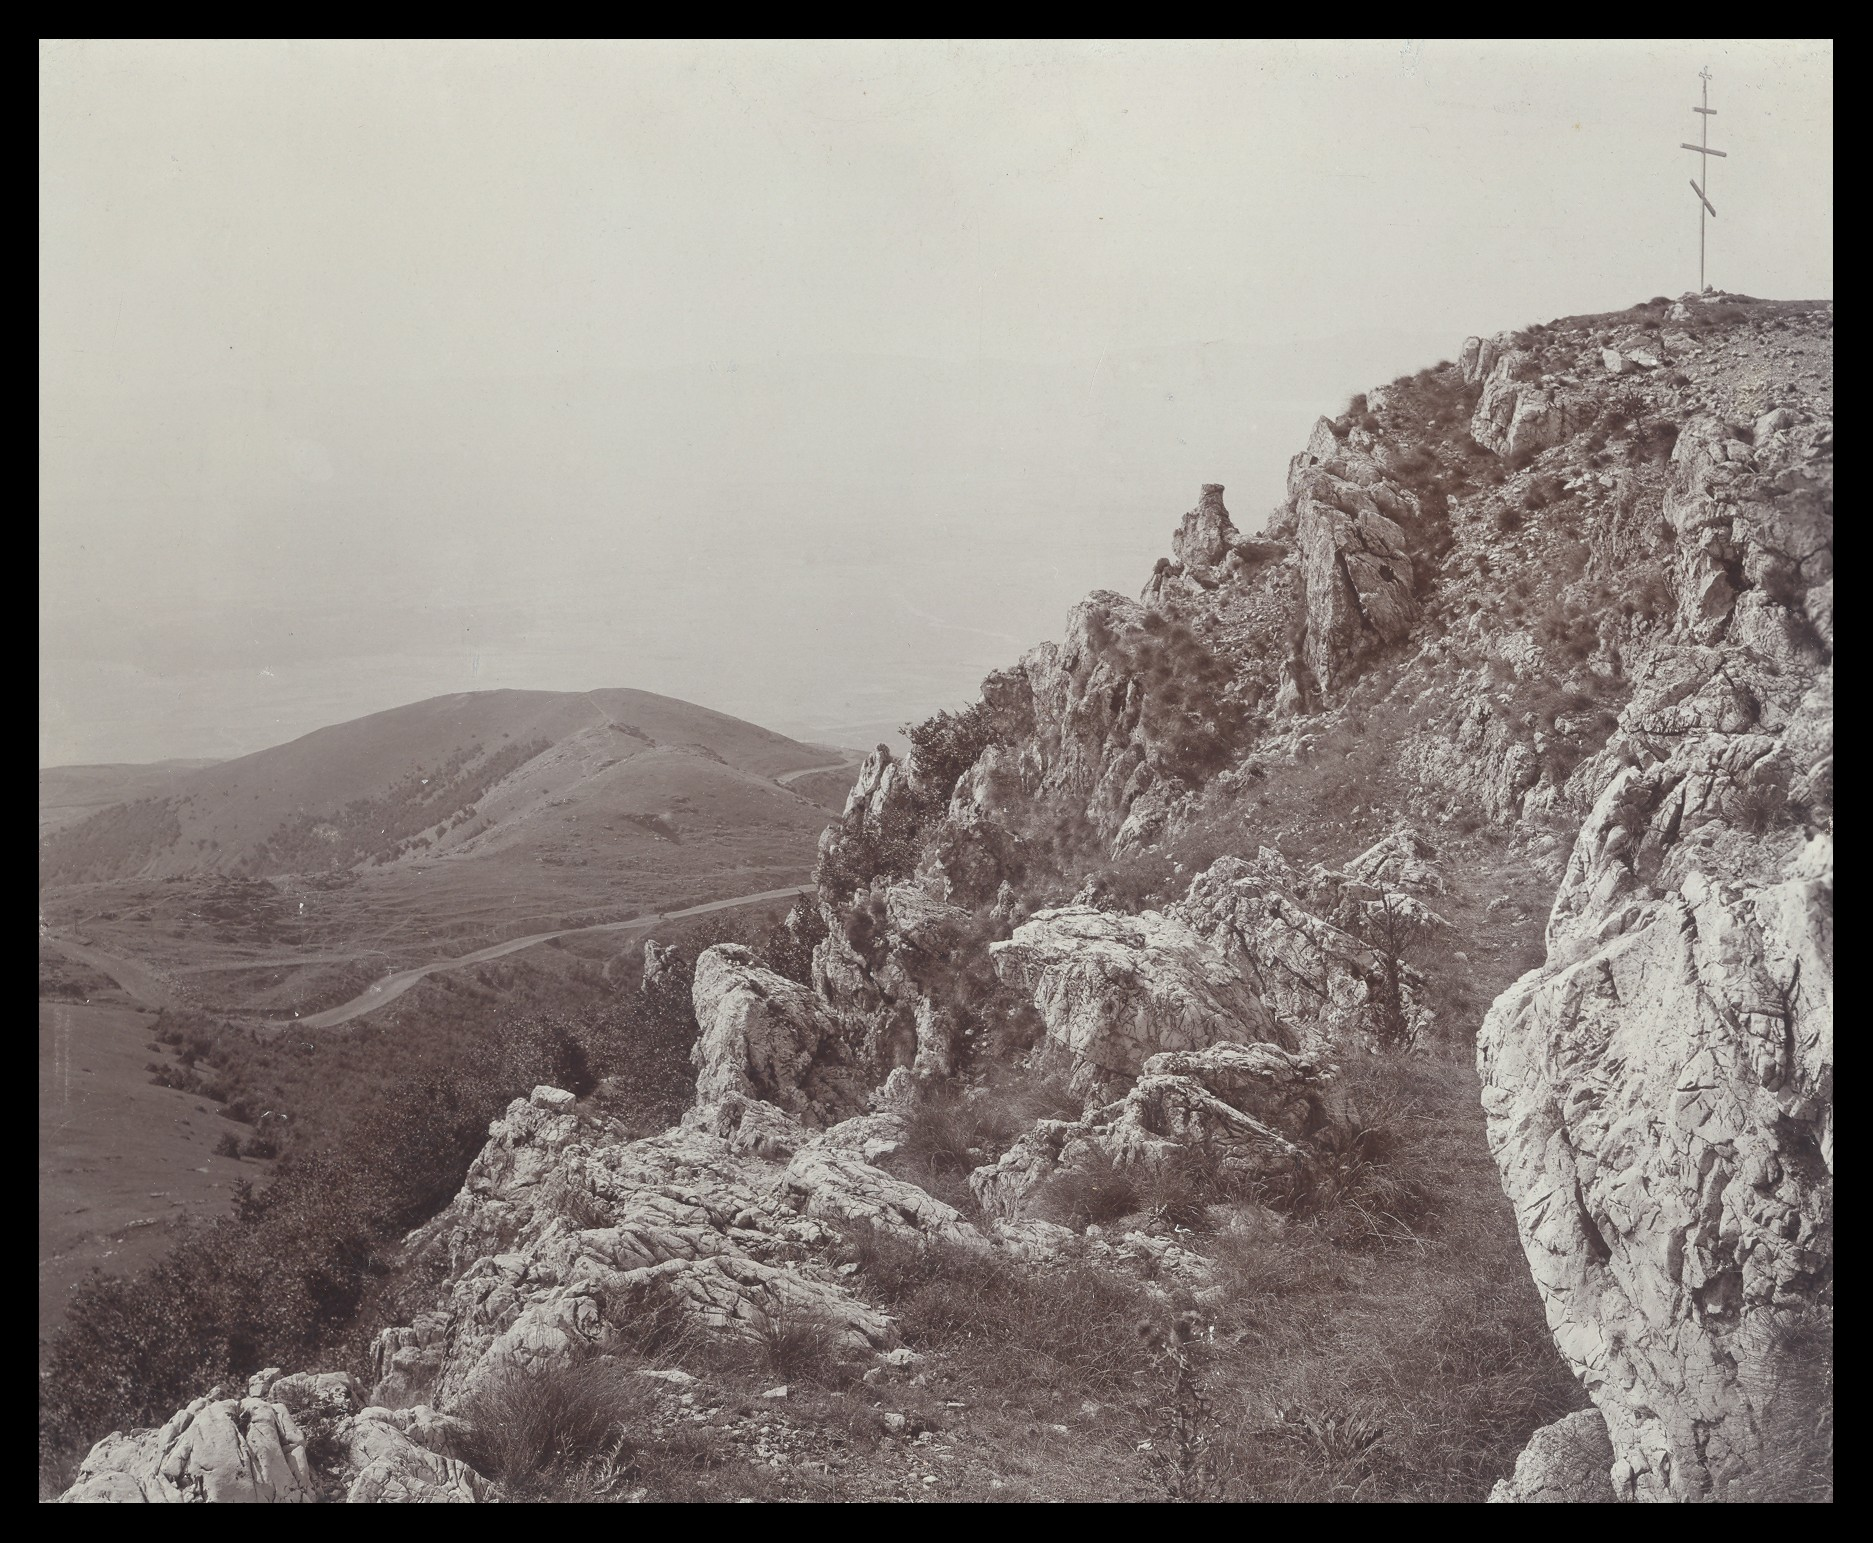 Orlovo gnezdo mountain peak, © National Museum of Military History Sofia